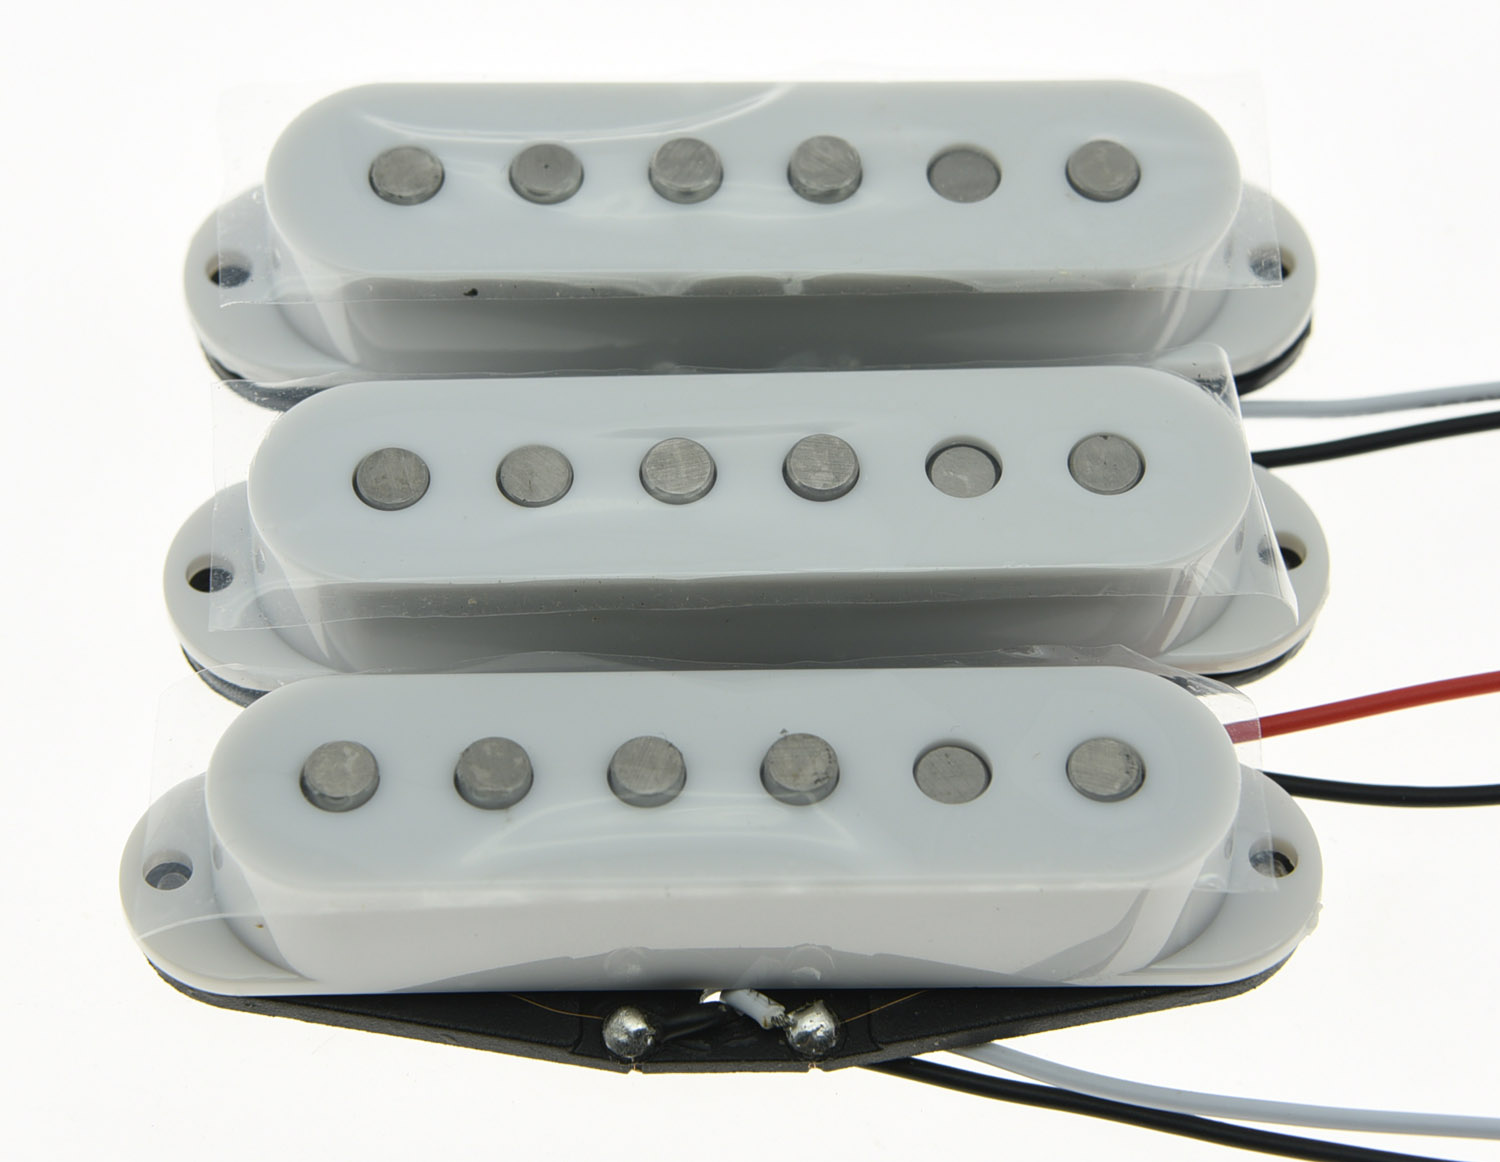 KAISH 3x White Alnico 5 Single Coil Pickups ST Strat SSS Pickup Set tsai hotsale vintage voice single coil pickup for stratocaster ceramic bobbin alnico single coil guitar pickup staggered pole